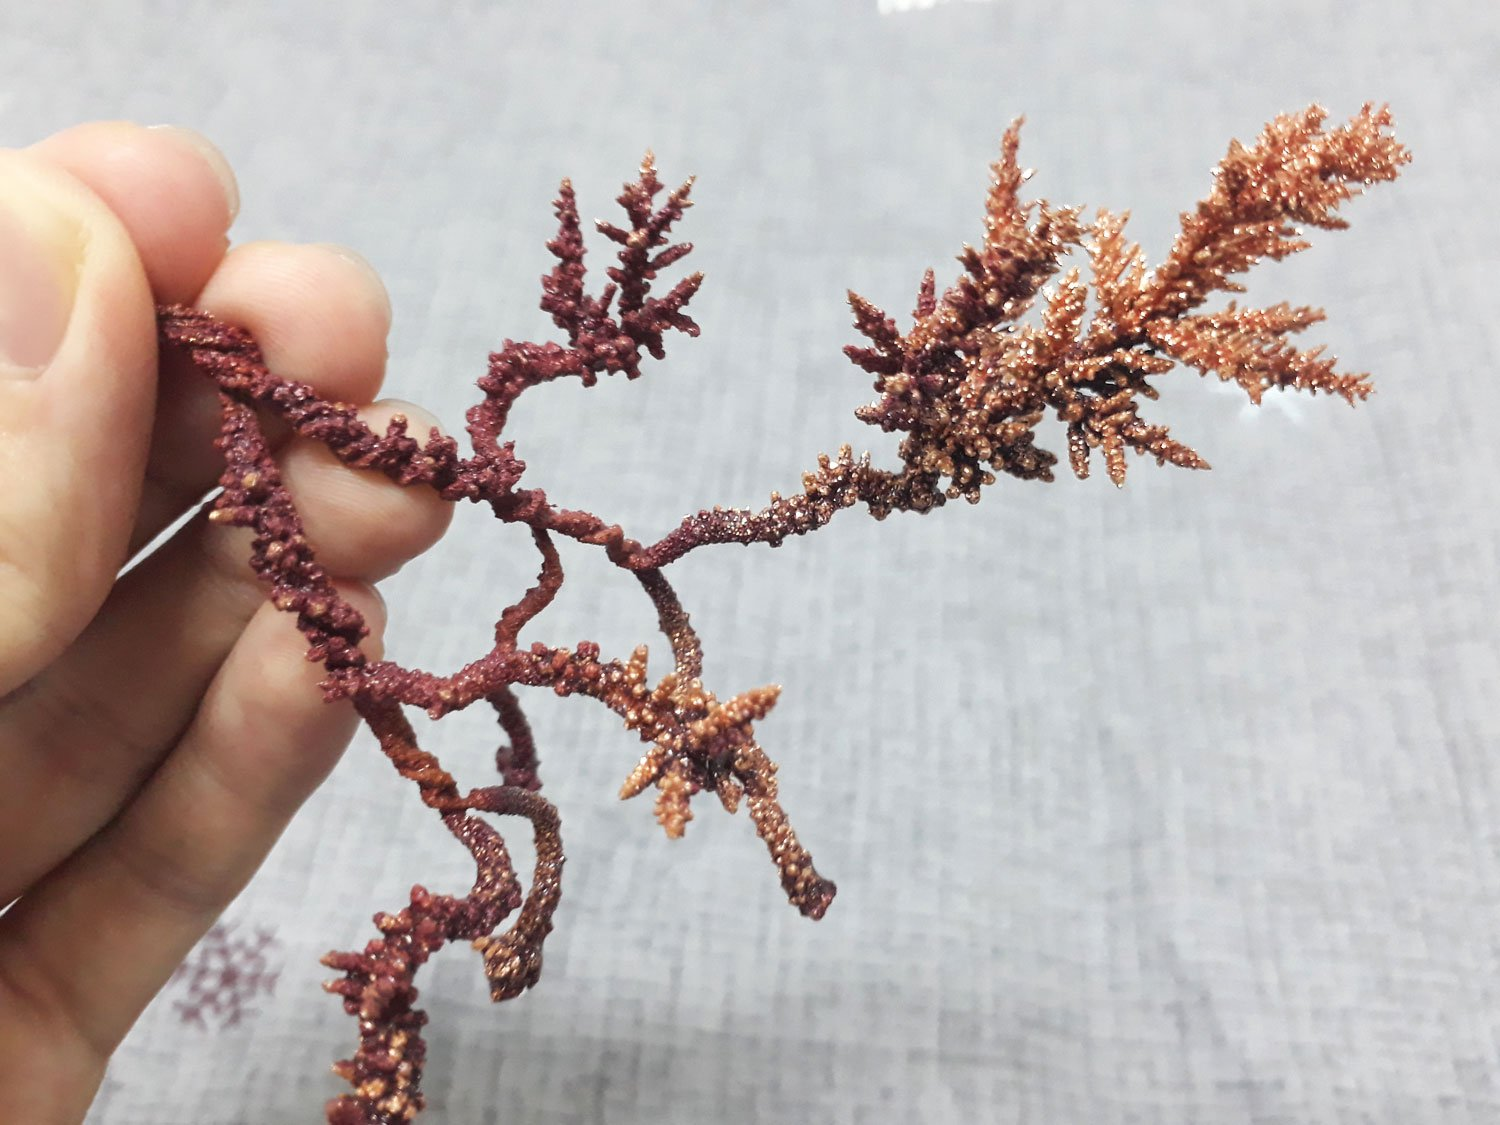 A tree of copper crystals grown electrochemically